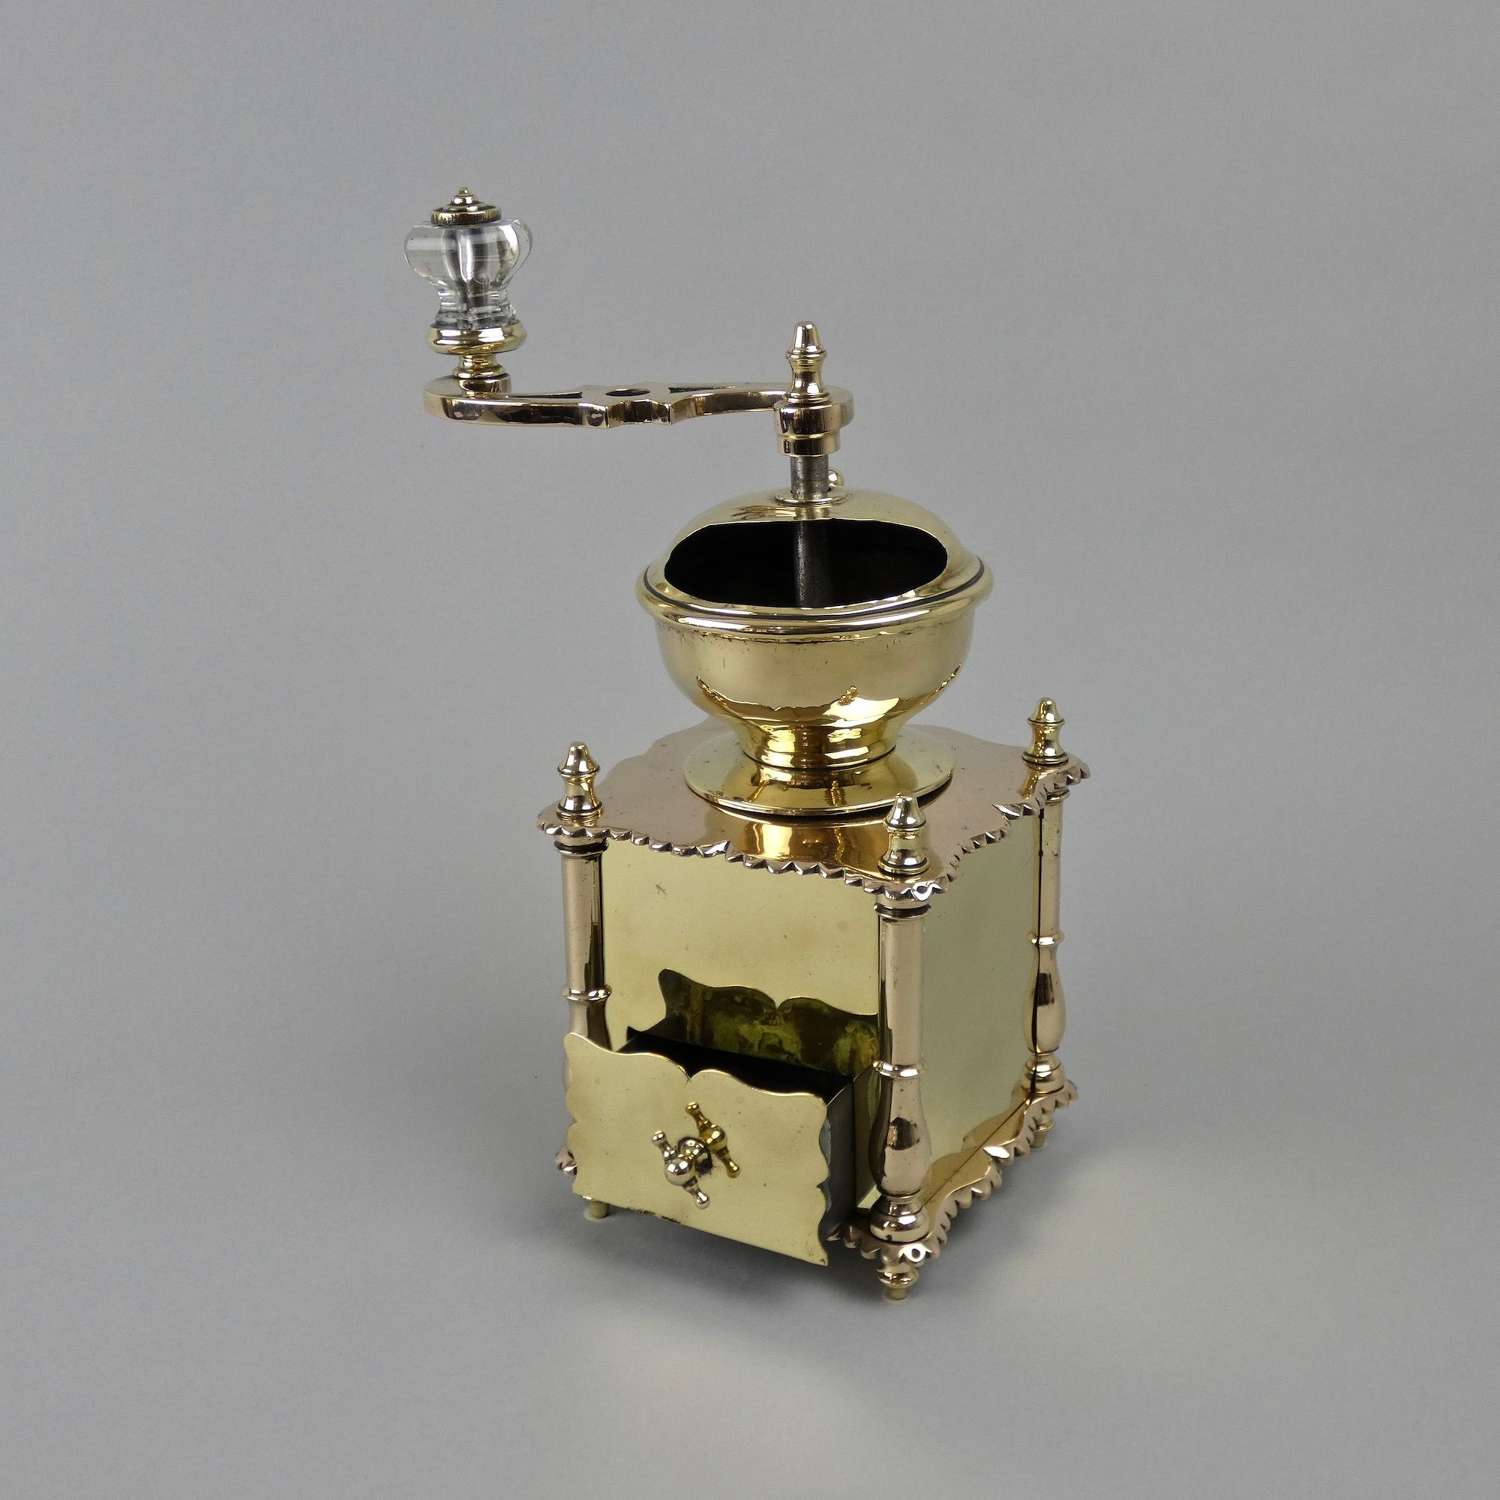 Stunning brass coffee mill